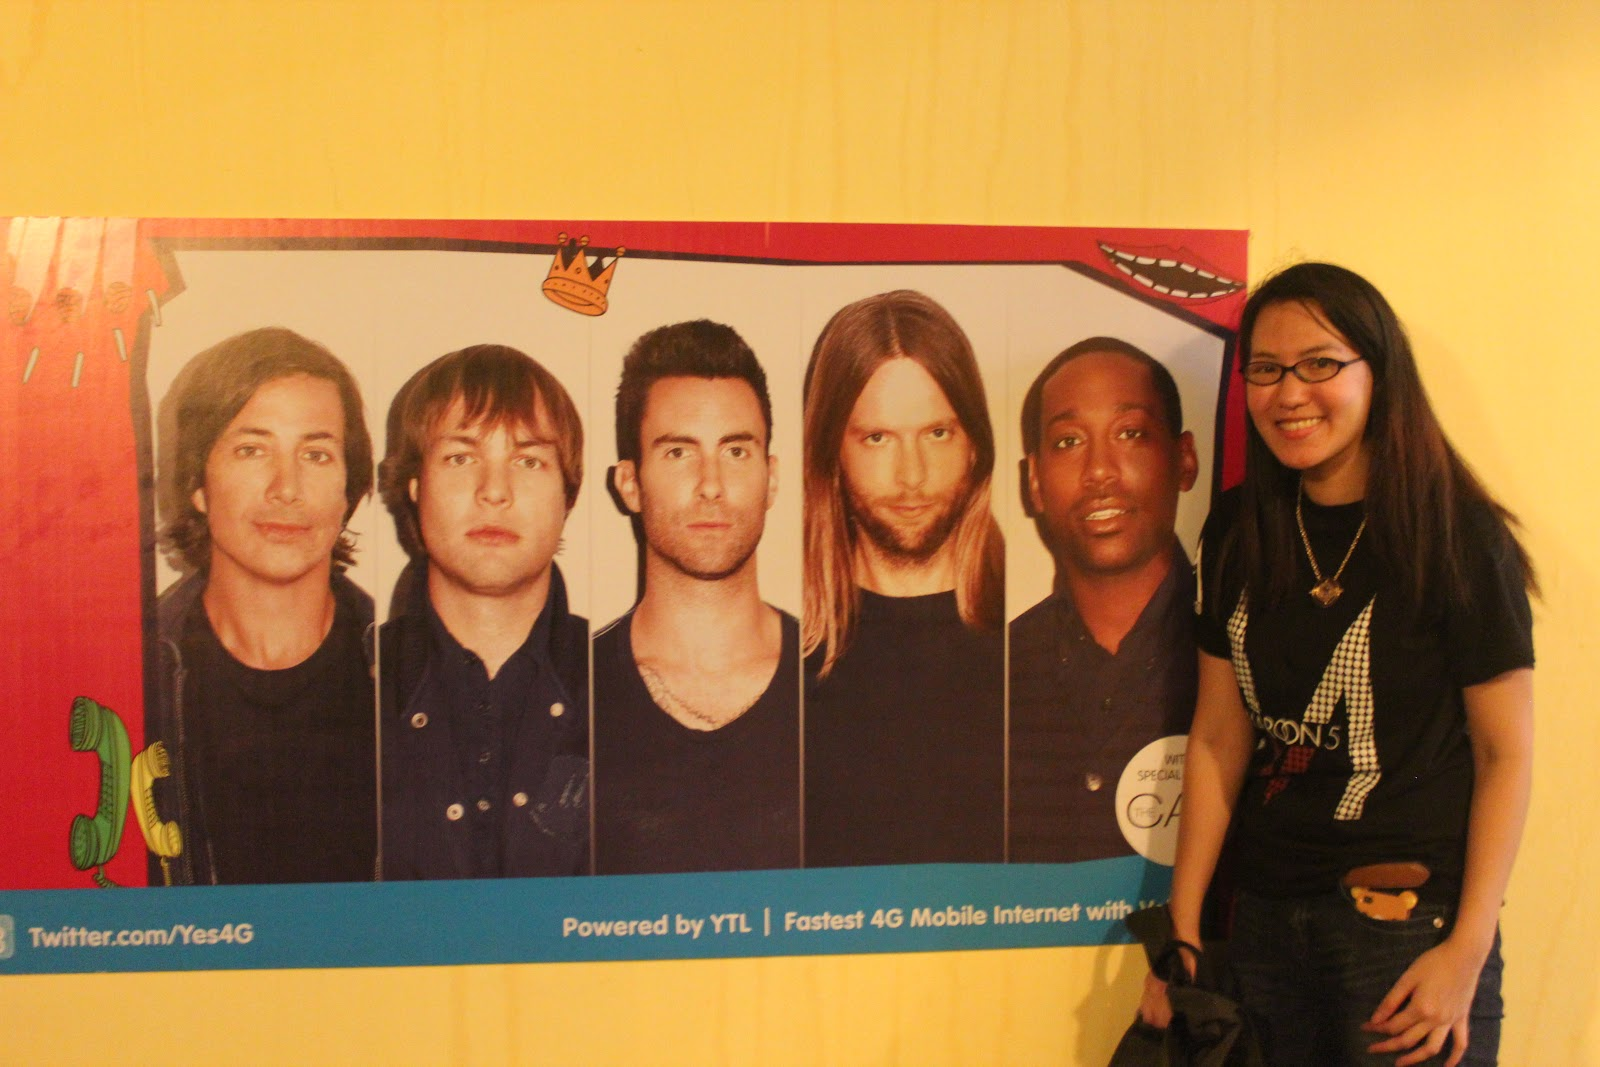 Perspectiv me maroon 5 overexposed tour 2012 live in malaysia o o meet greet photo with maroon 5 m4hsunfo